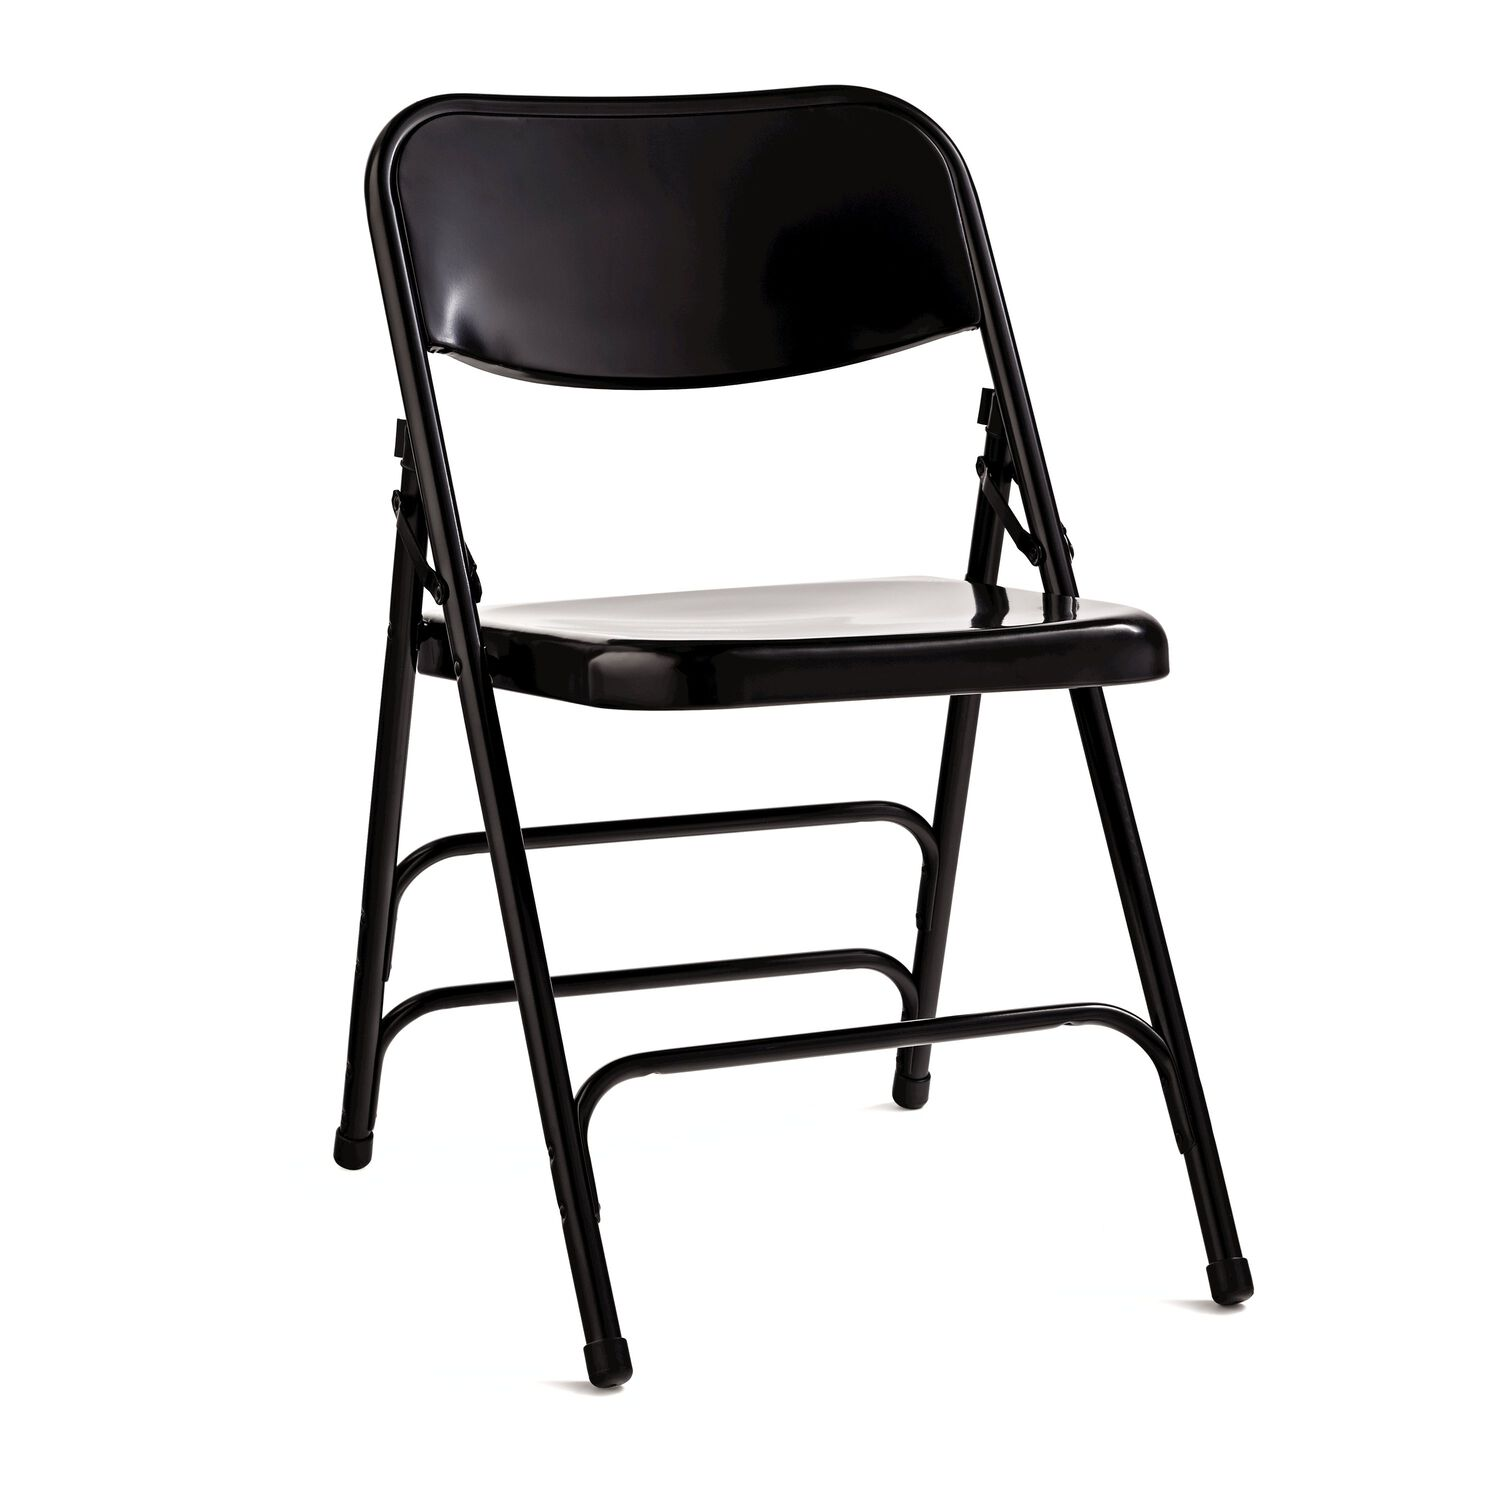 Fresh Samsonite Folding Chairs Best